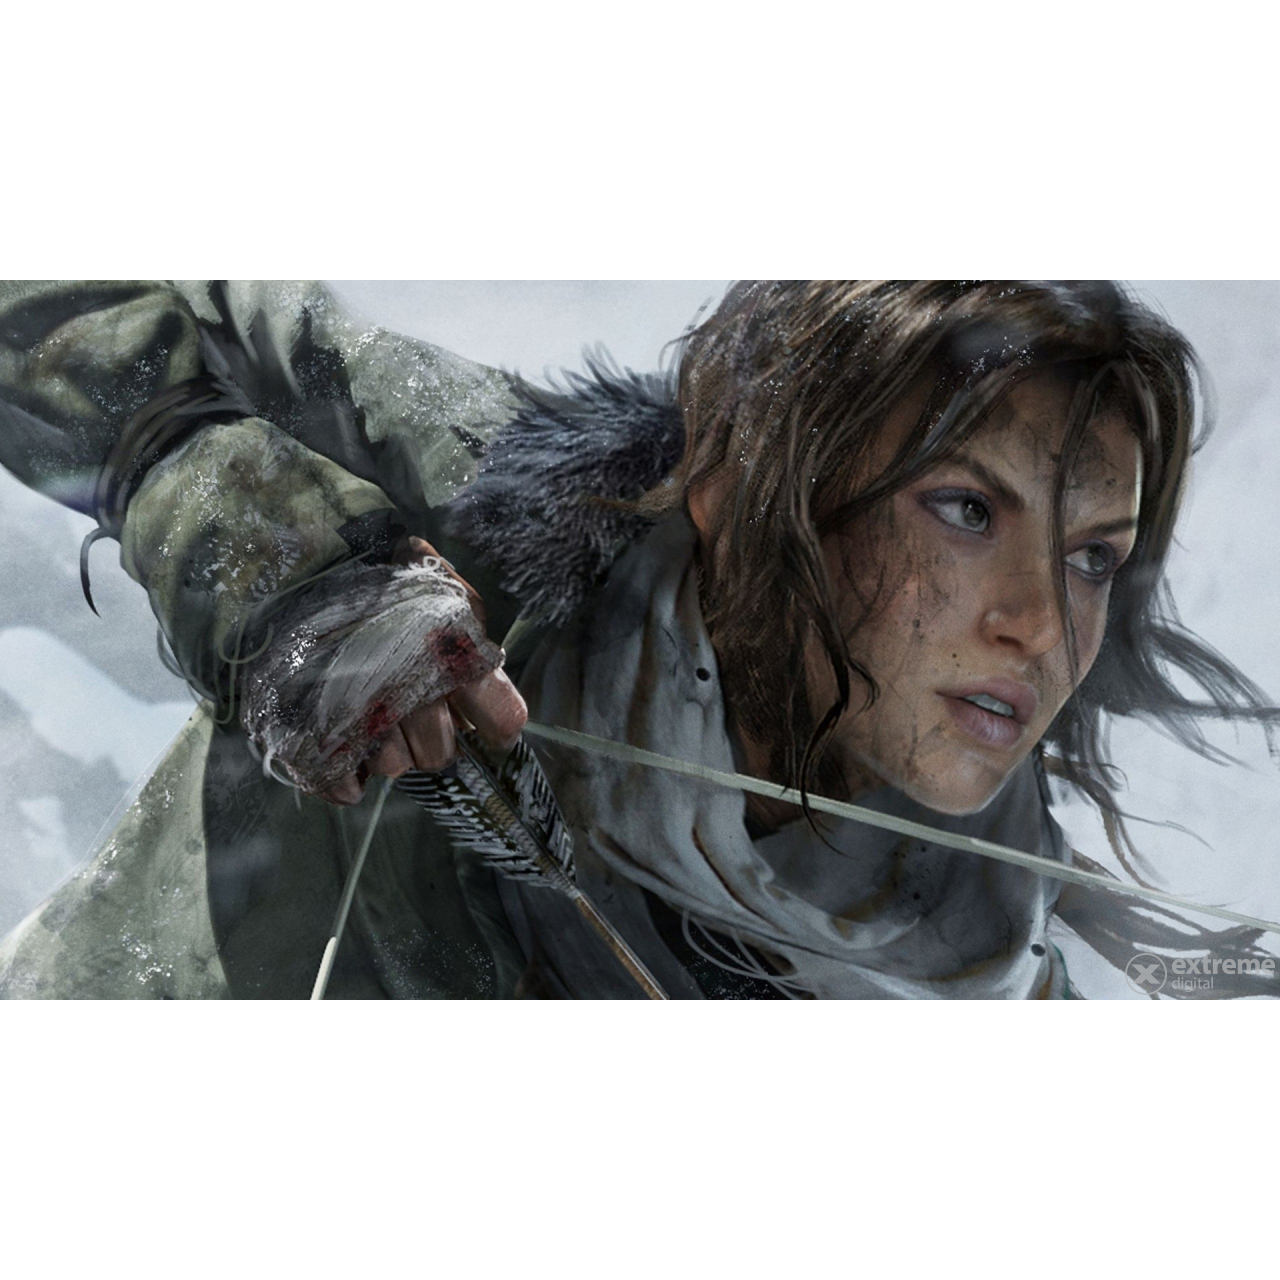 rise-of-the-tomb-raider-xbox-one-jatekszoftver_d033b57f.jpg